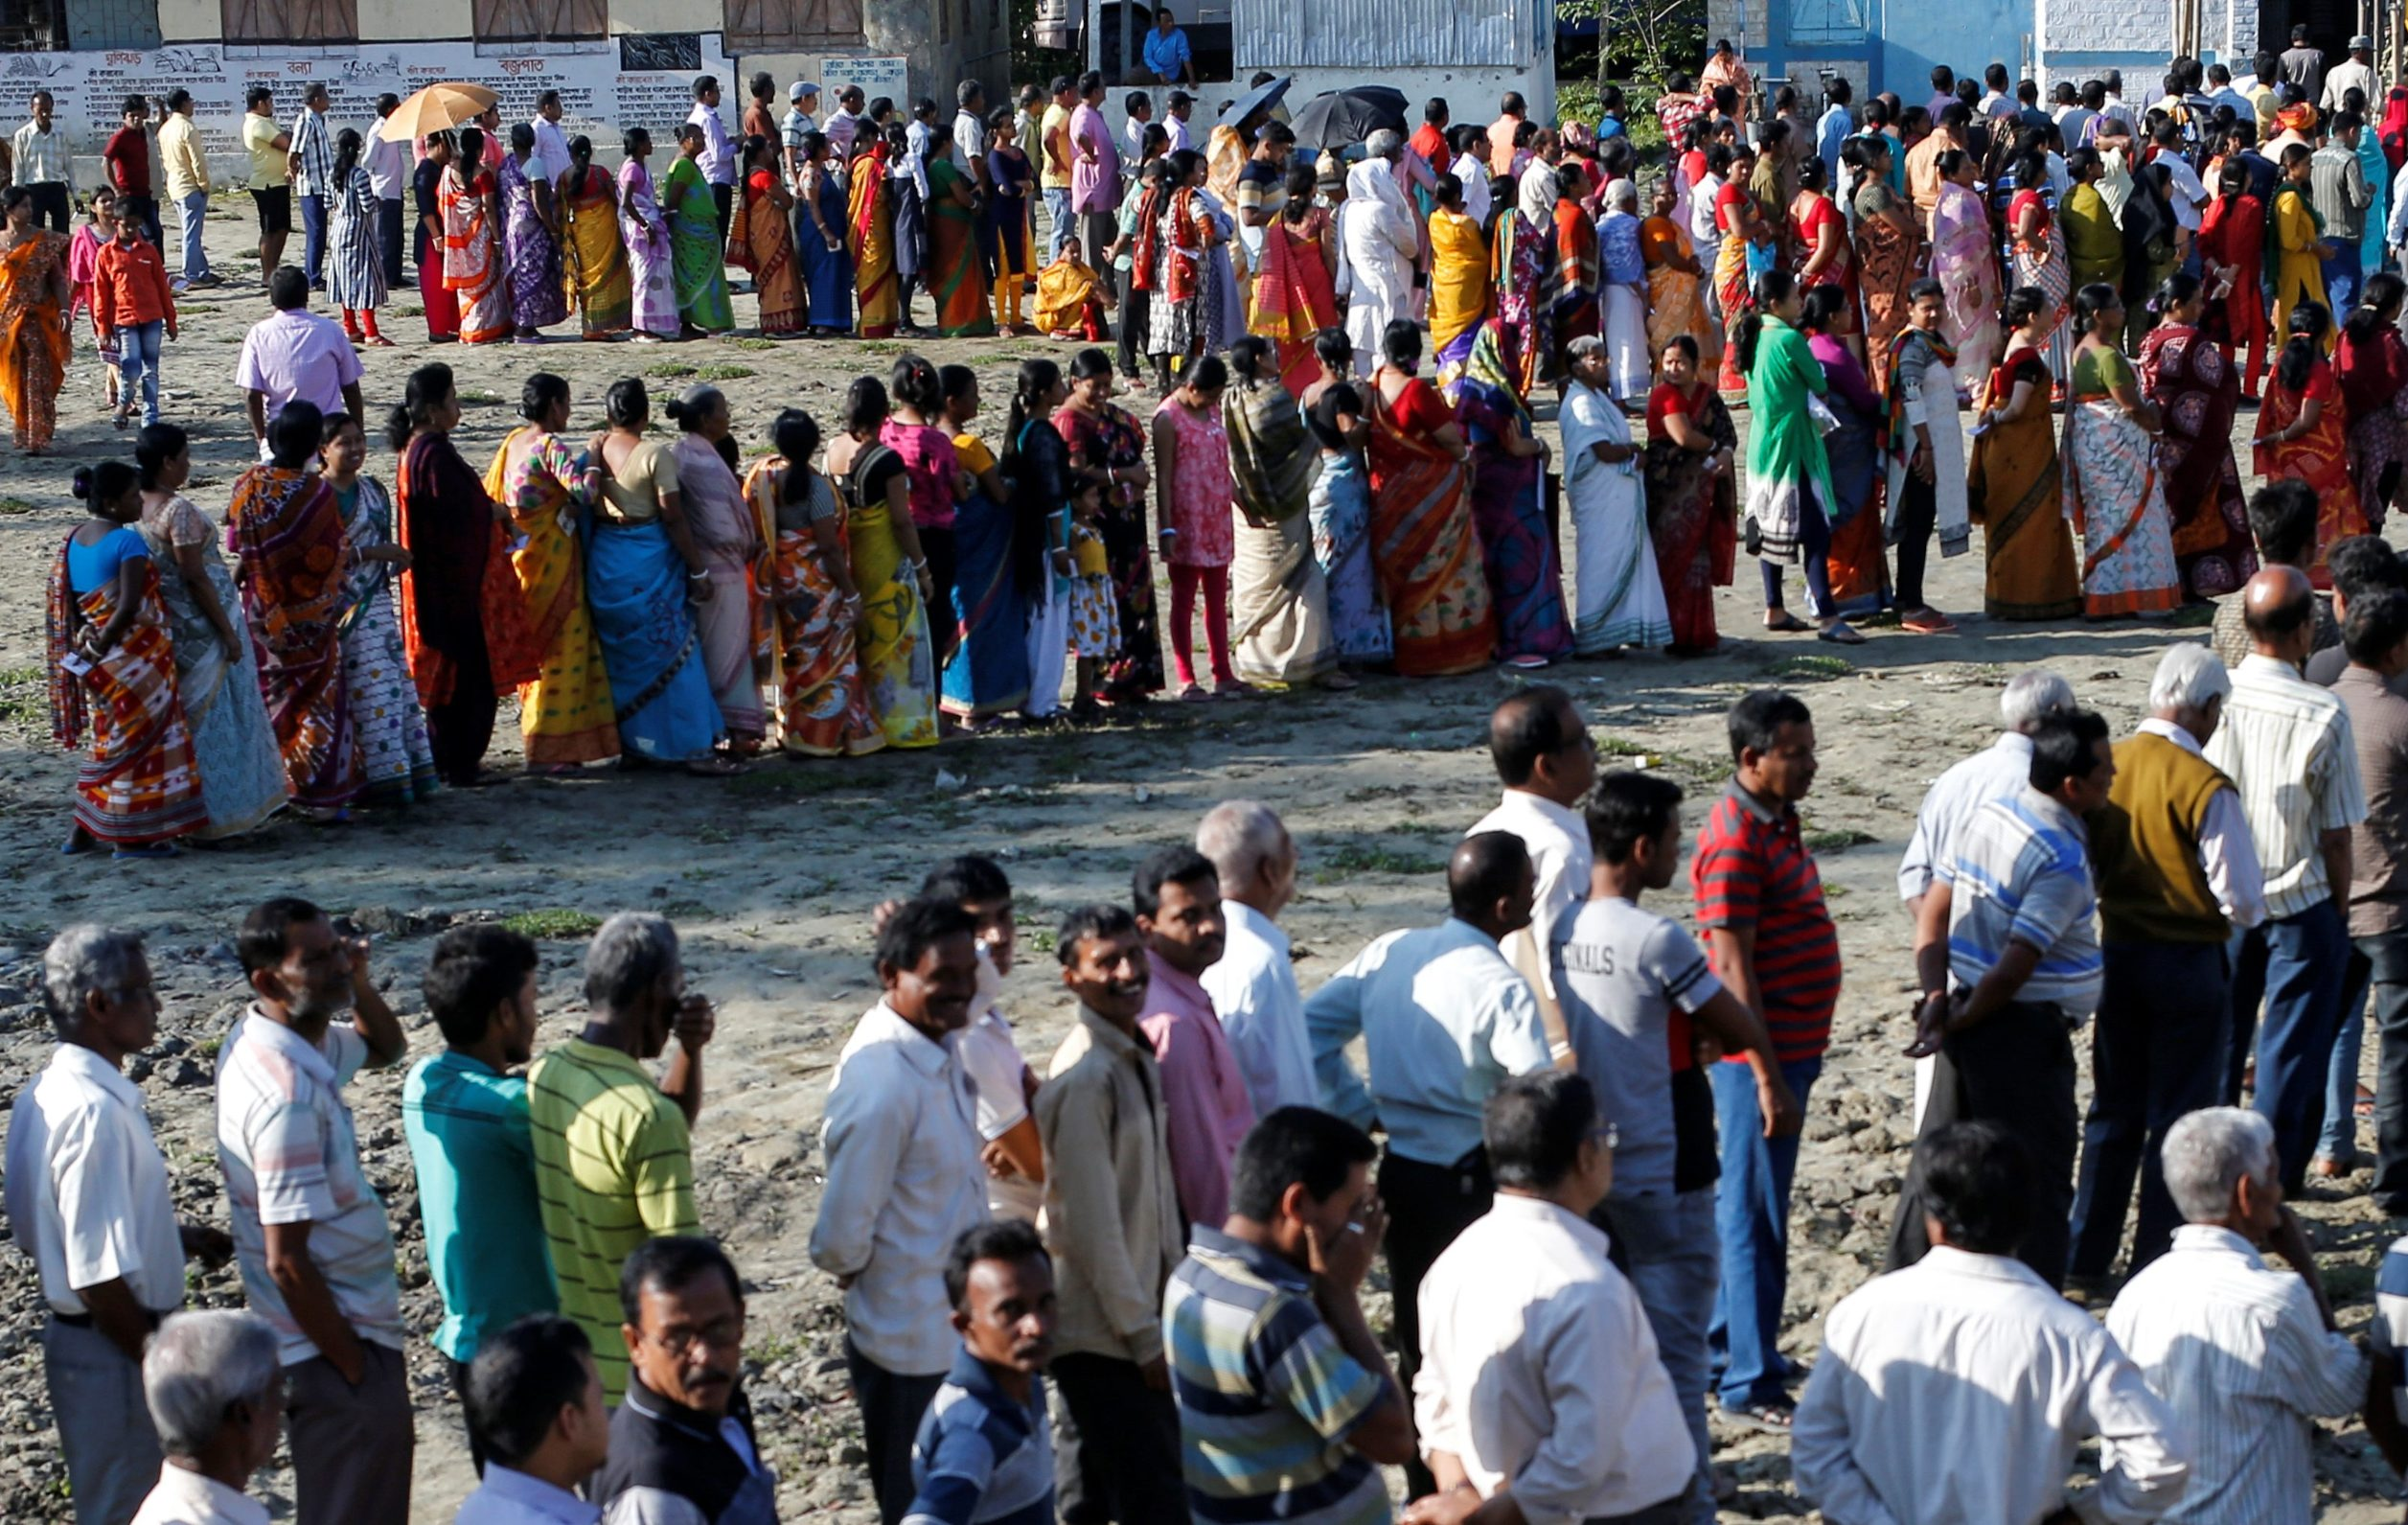 Voters line up to cast their votes outside a polling station during the first phase of general election in Alipurduar district in the eastern state of West Bengal, India, April 11, 2019. REUTERS/Rupak De Chowdhuri     TPX IMAGES OF THE DAY